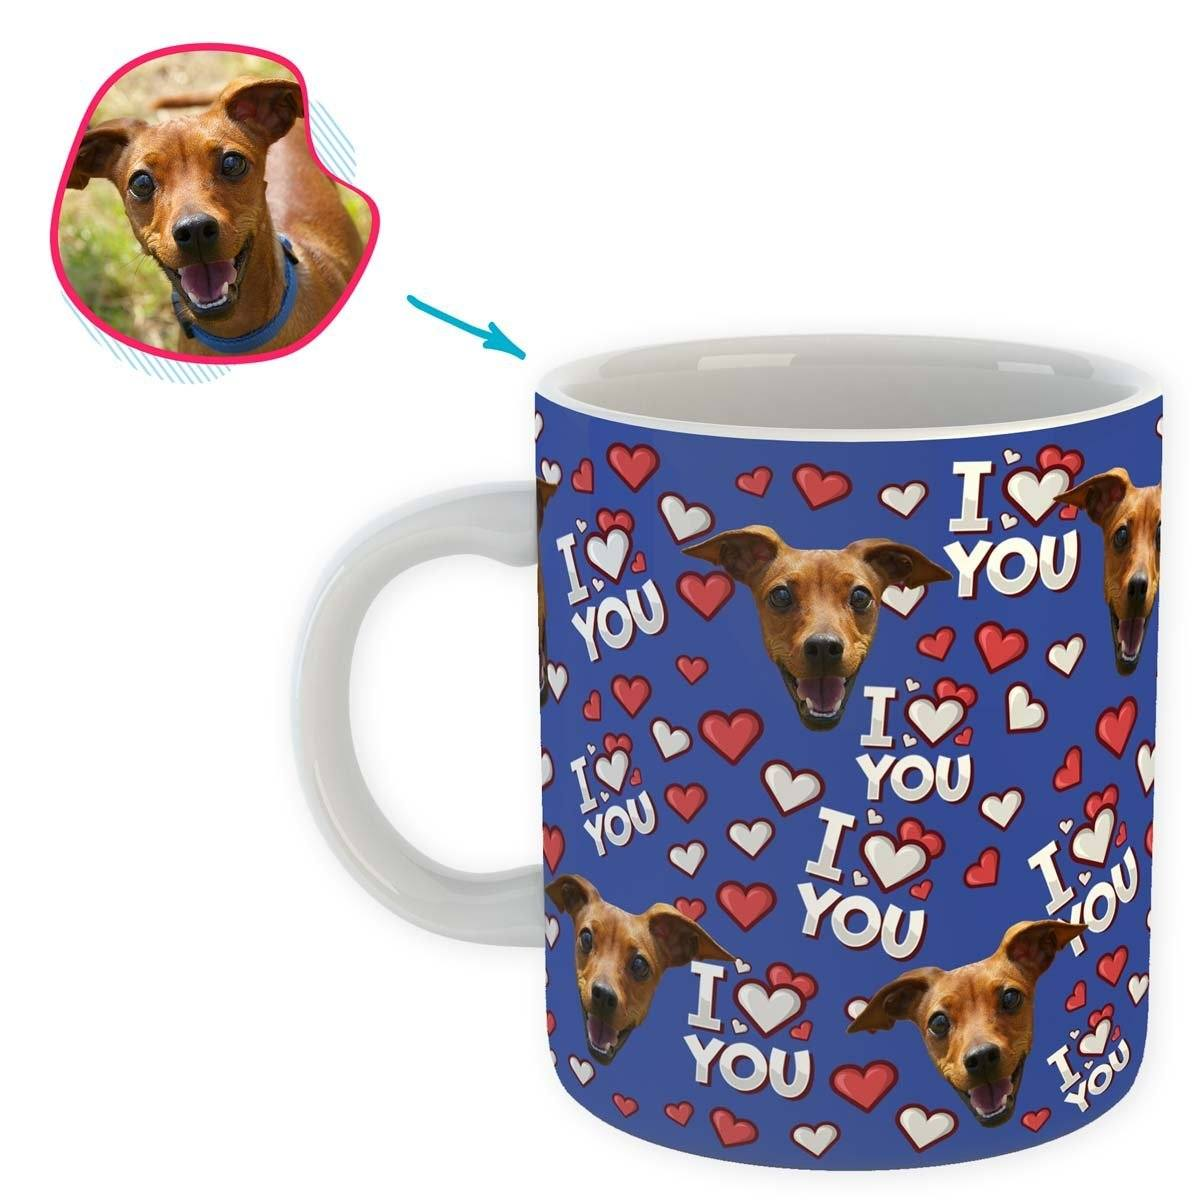 darkblue I Love You mug personalized with photo of face printed on it